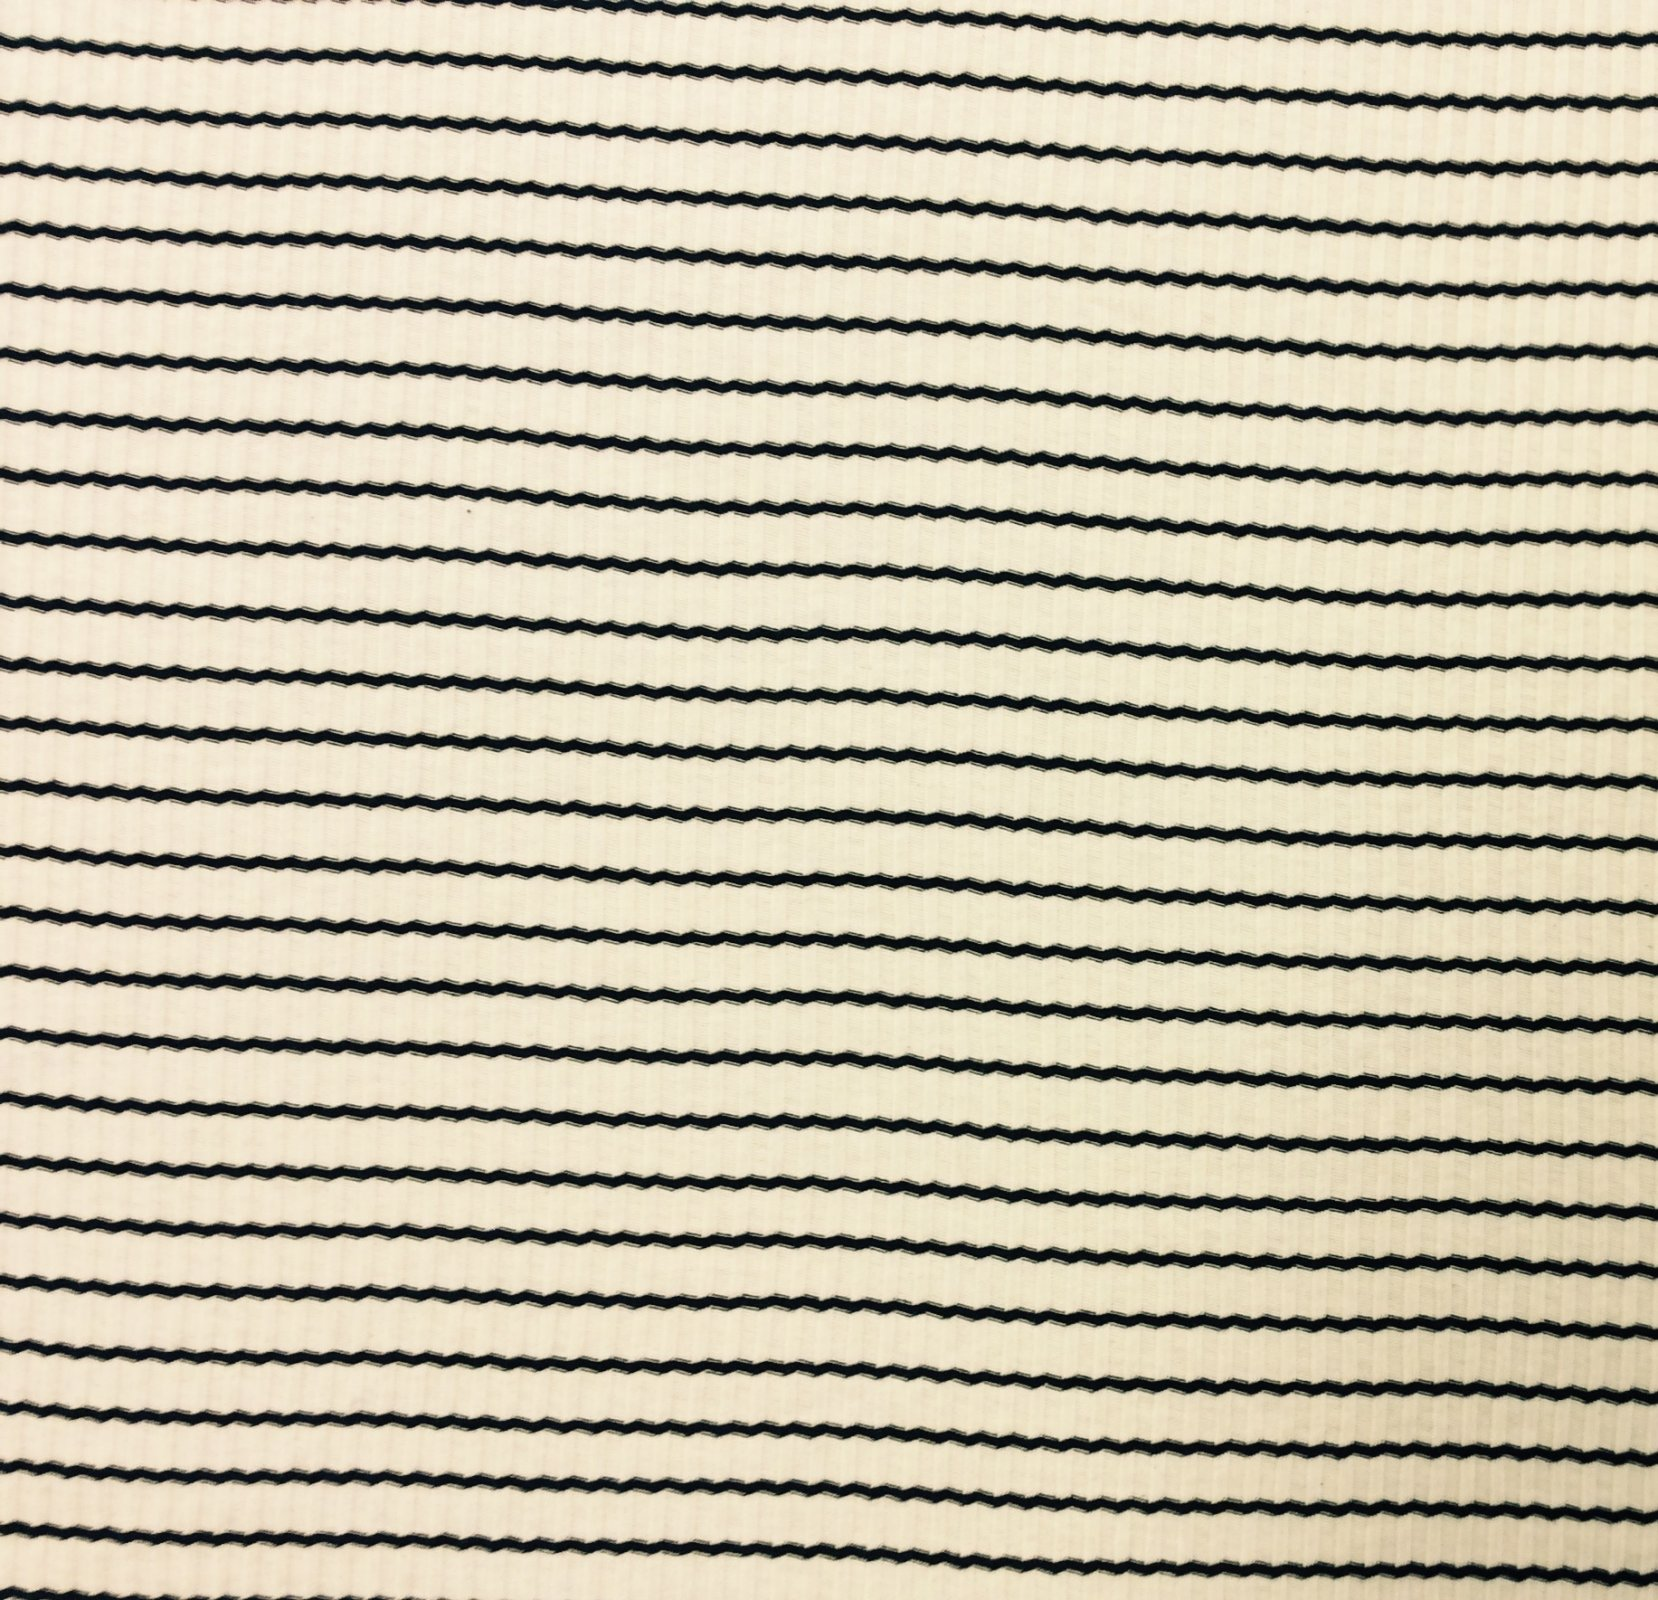 Lycra Rayon Knit Ribbed Stretch Striped Apparel Fabric RMCC7574